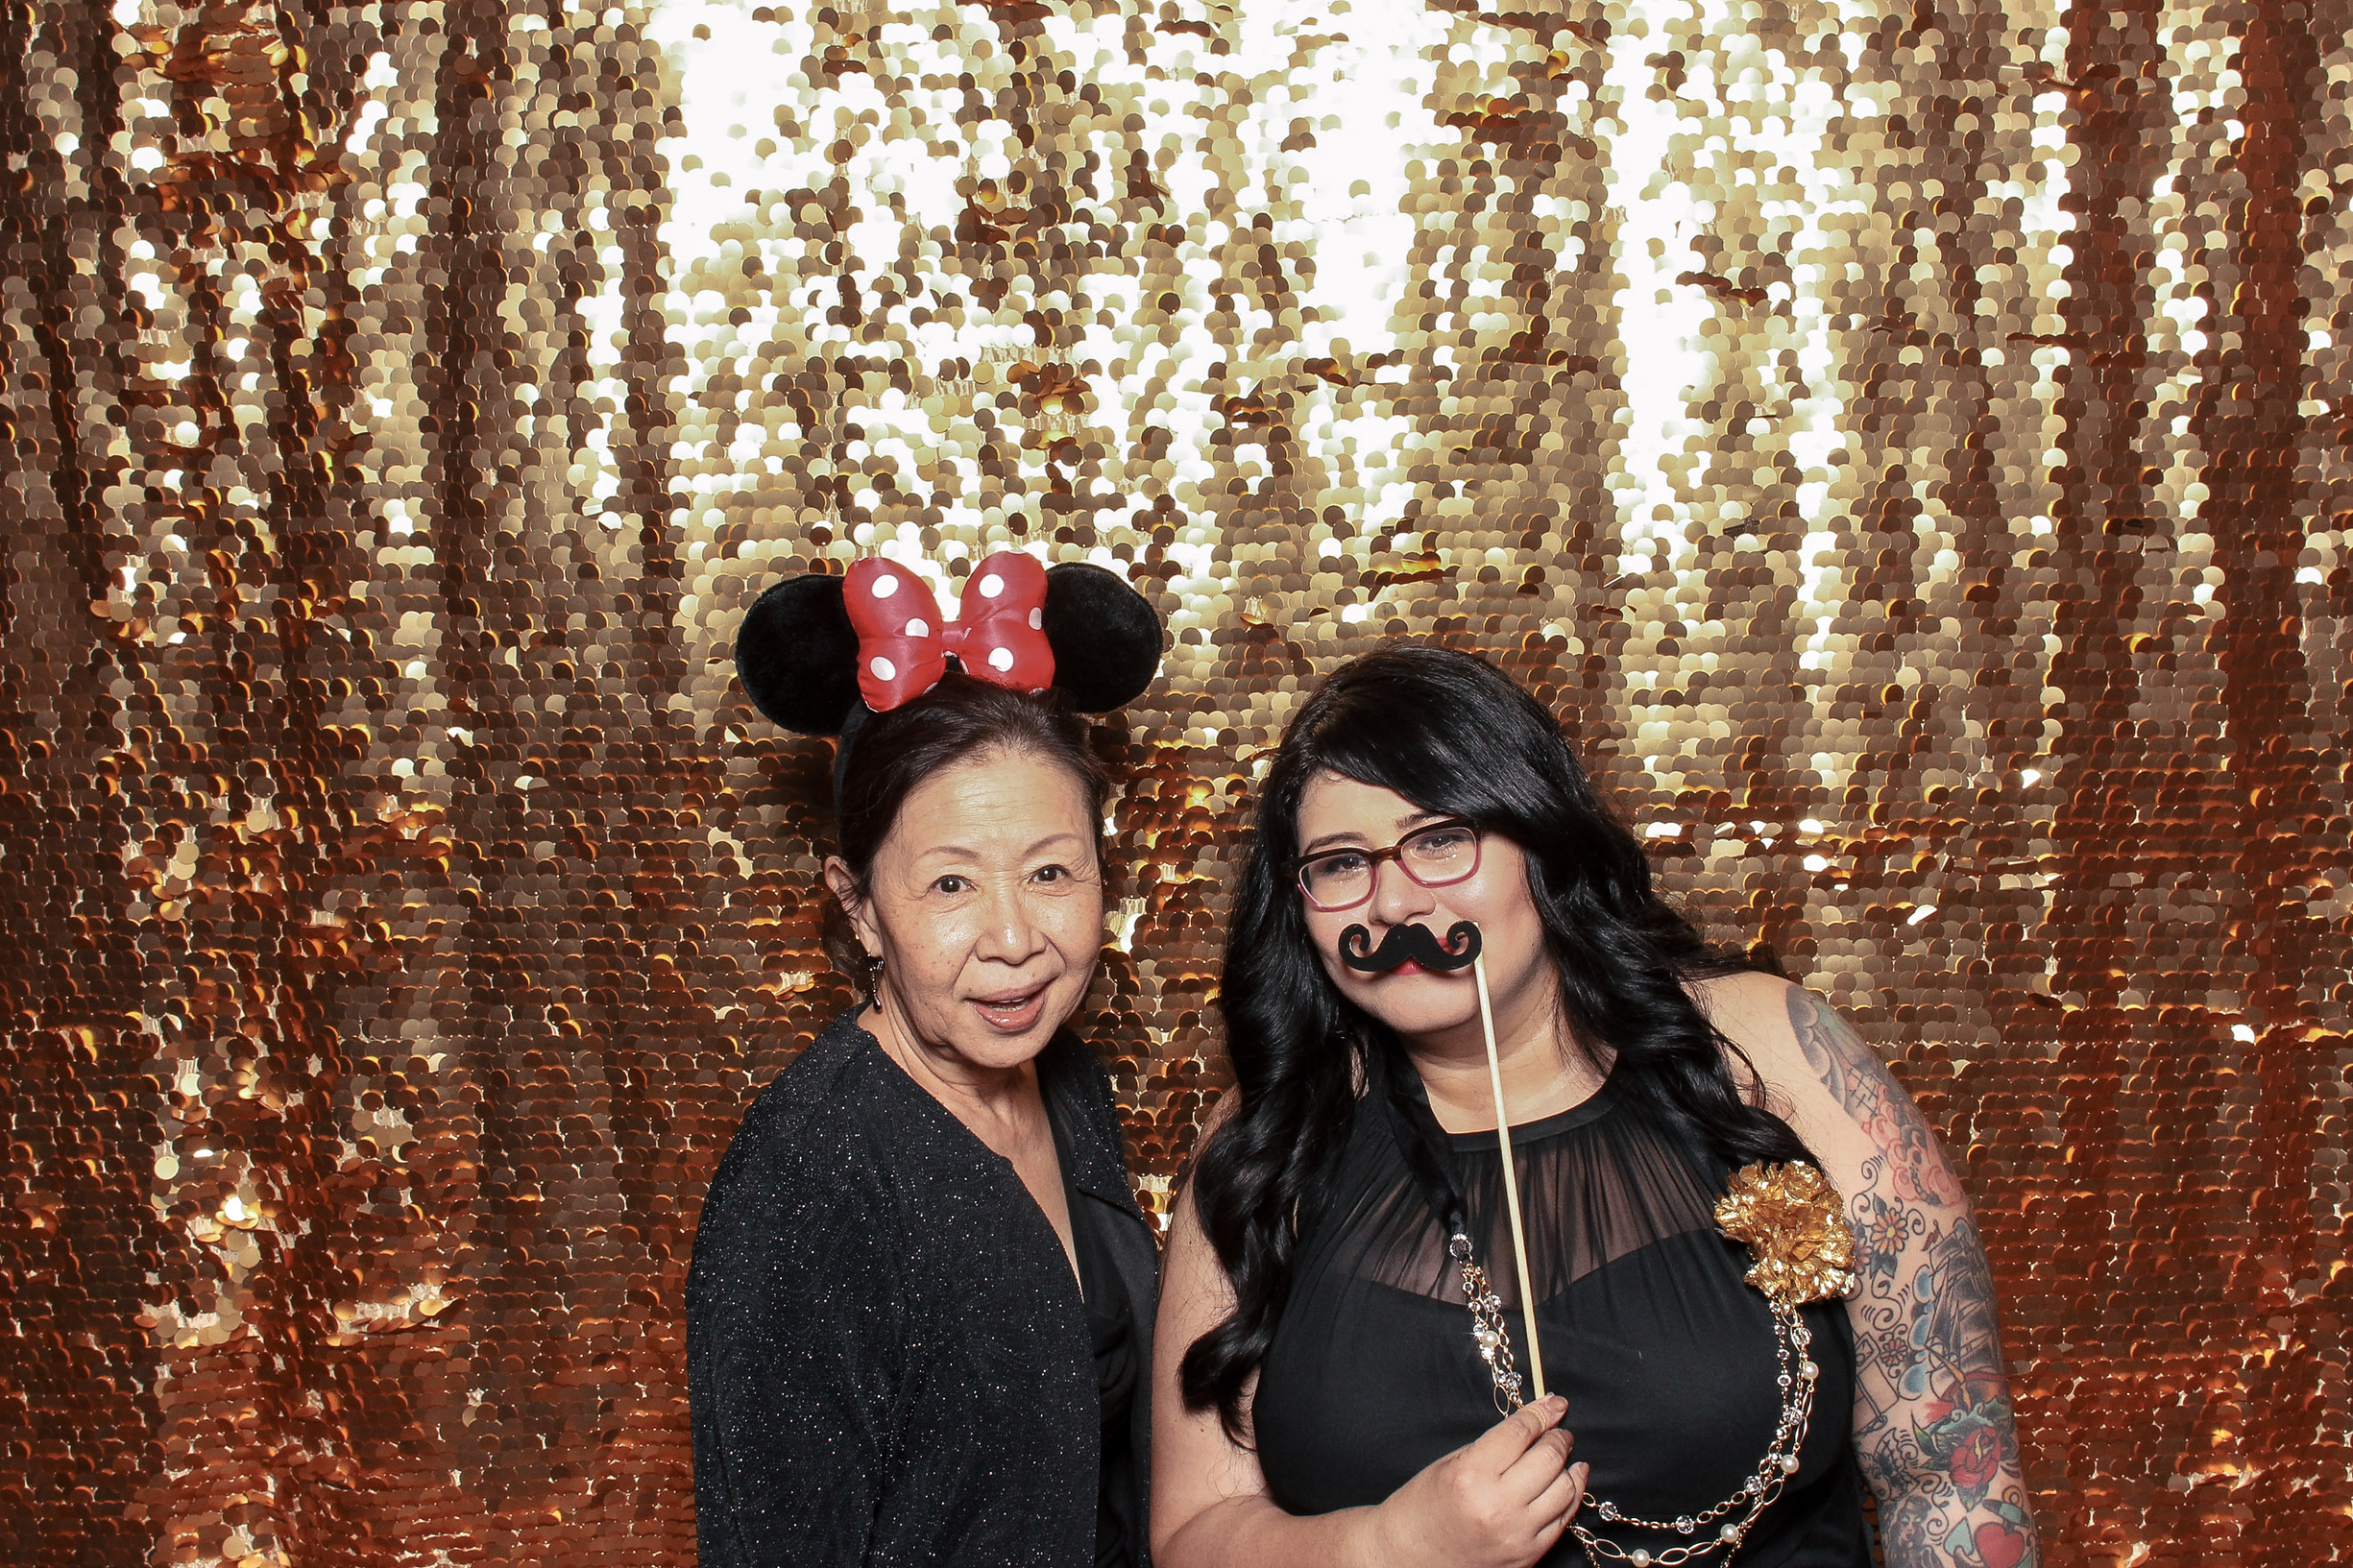 My friends had a Photo Booth and I loved how fun it was. We were awkward, funny, and you really get to know someone when they pick up a prop. This is my friend's aunt, how adorable and cool is she in those Minnie ears??